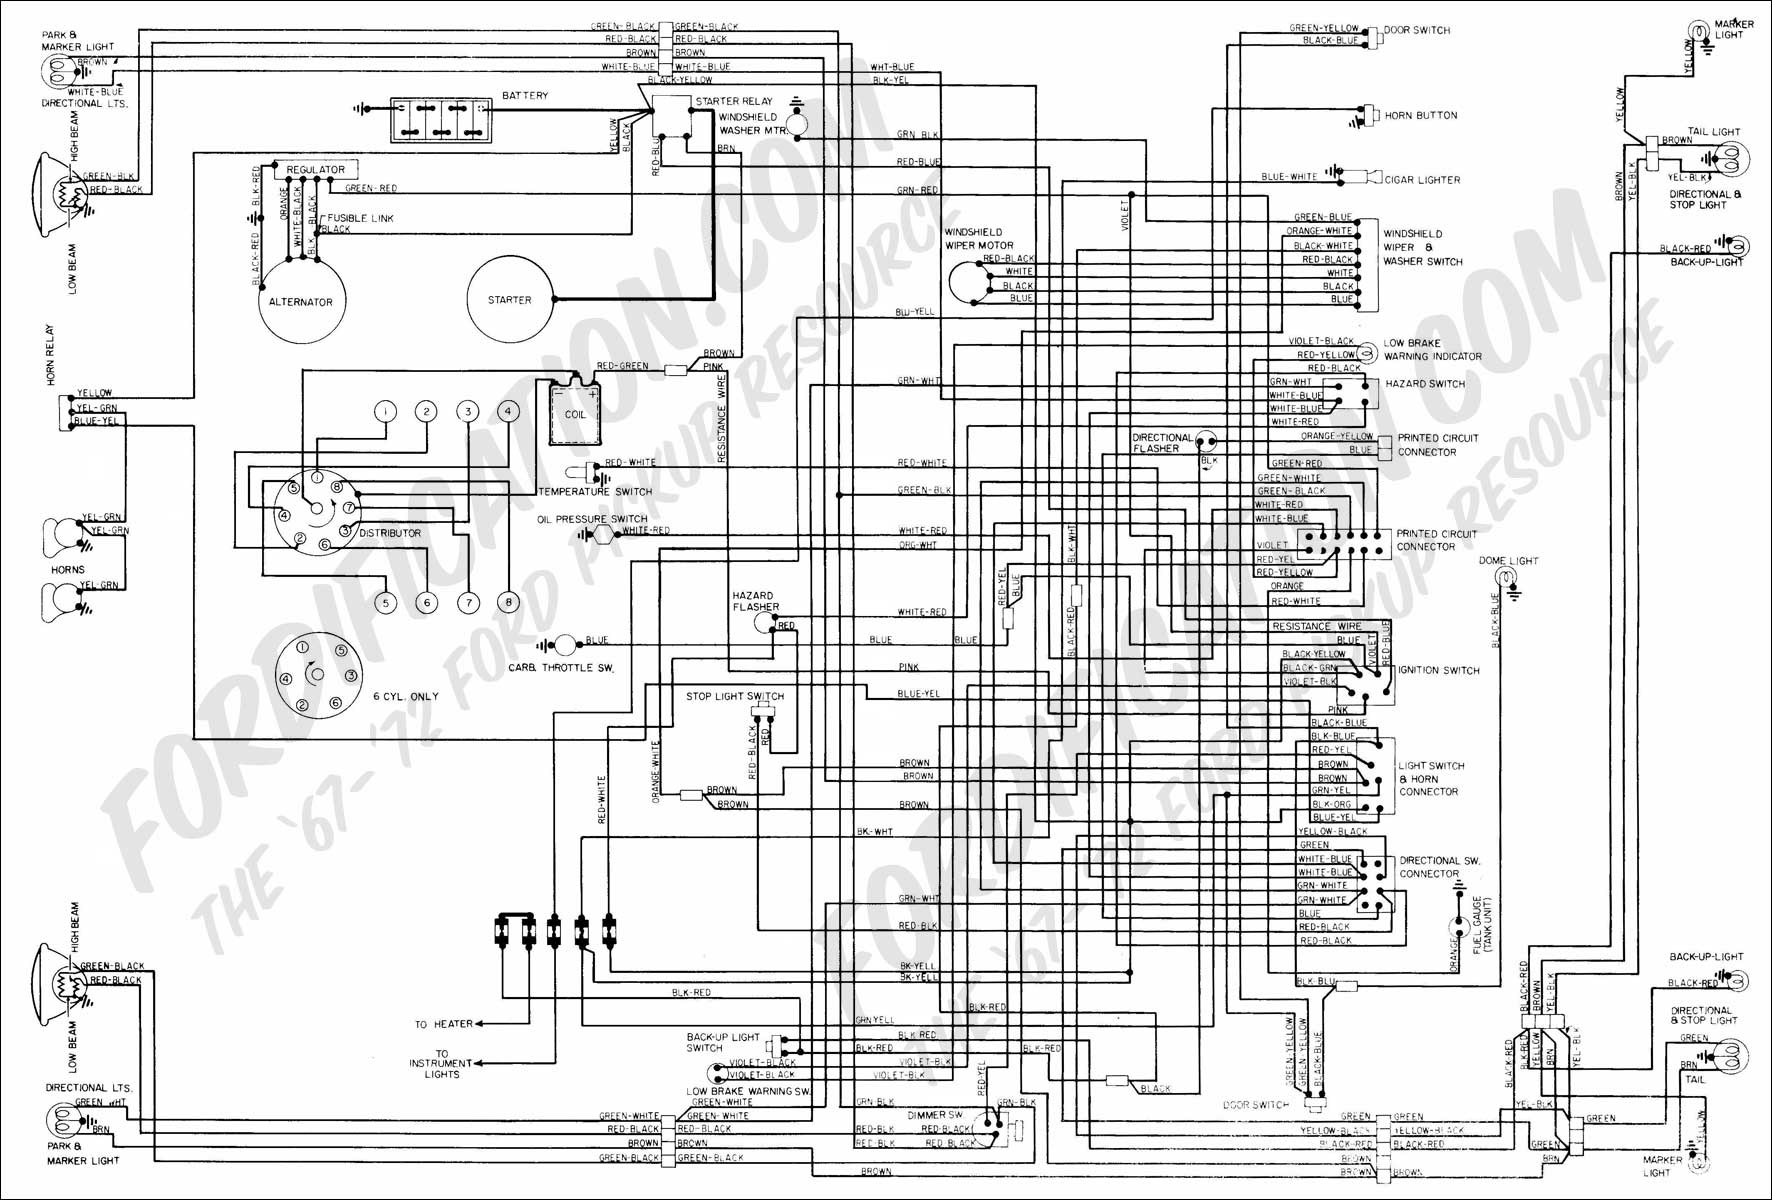 1967 master wiring diagram 1968 wiring schematics 1 of 2